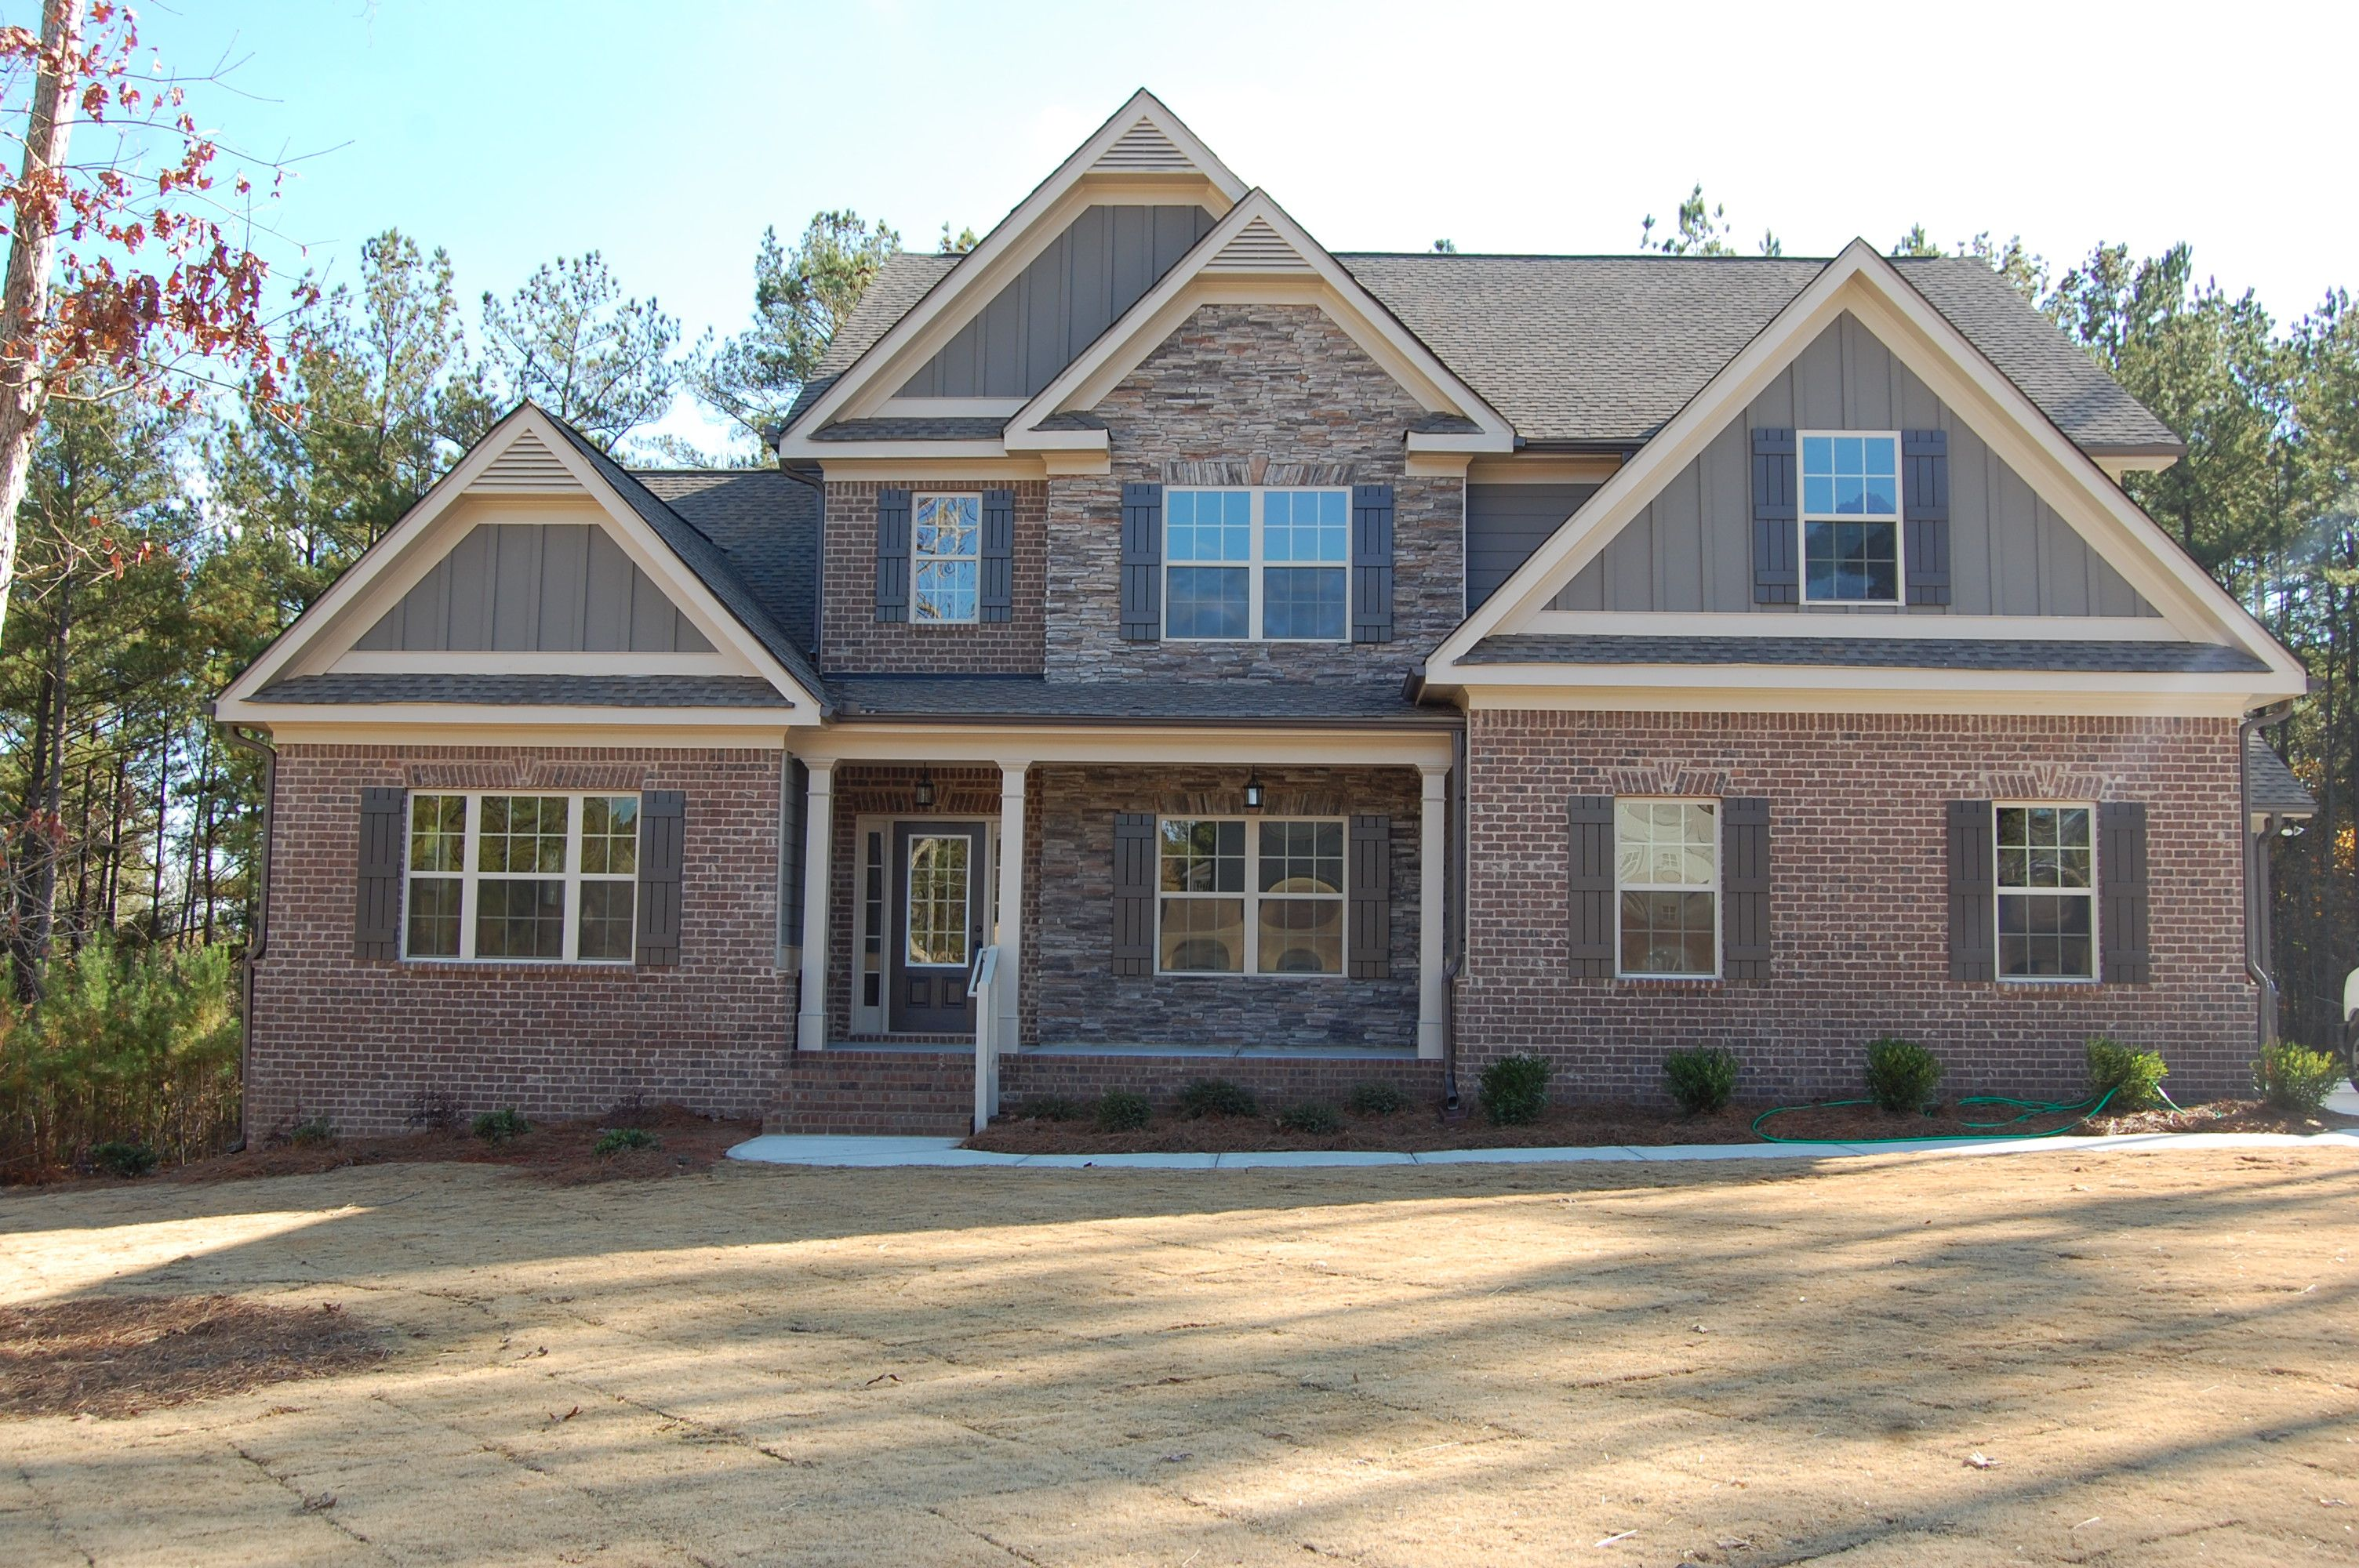 Home For In Loganville Ga Walton County Reliant Homes Silver Thorne The Chandler Plan